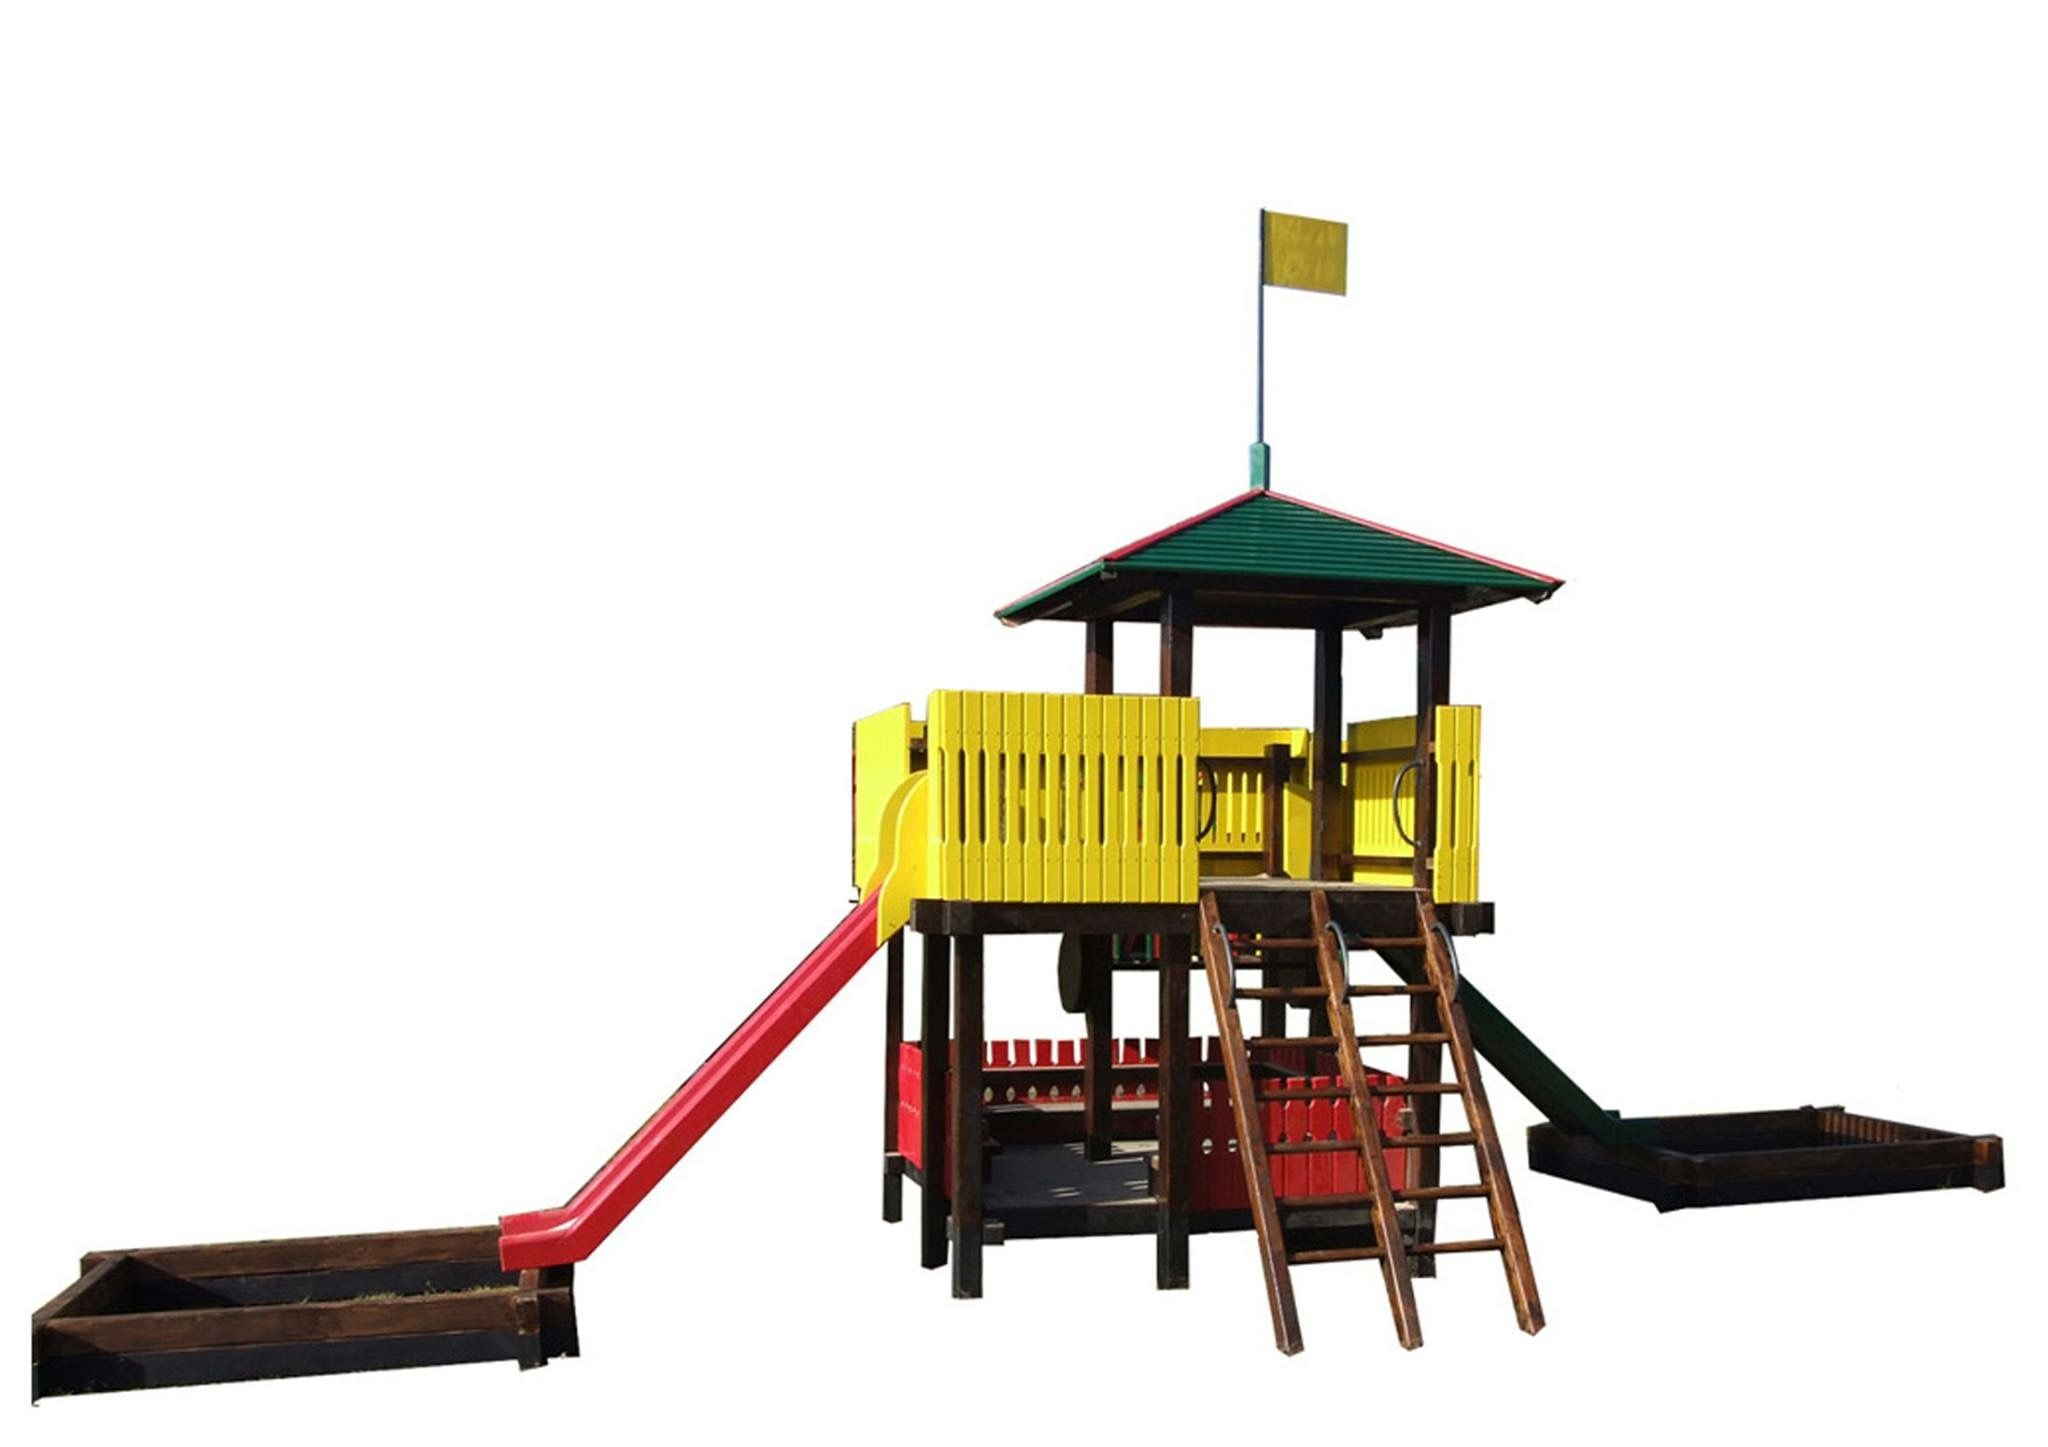 szr garden design kosjeric wooden product climbing fortress with slides - Garden Design Kosjeric